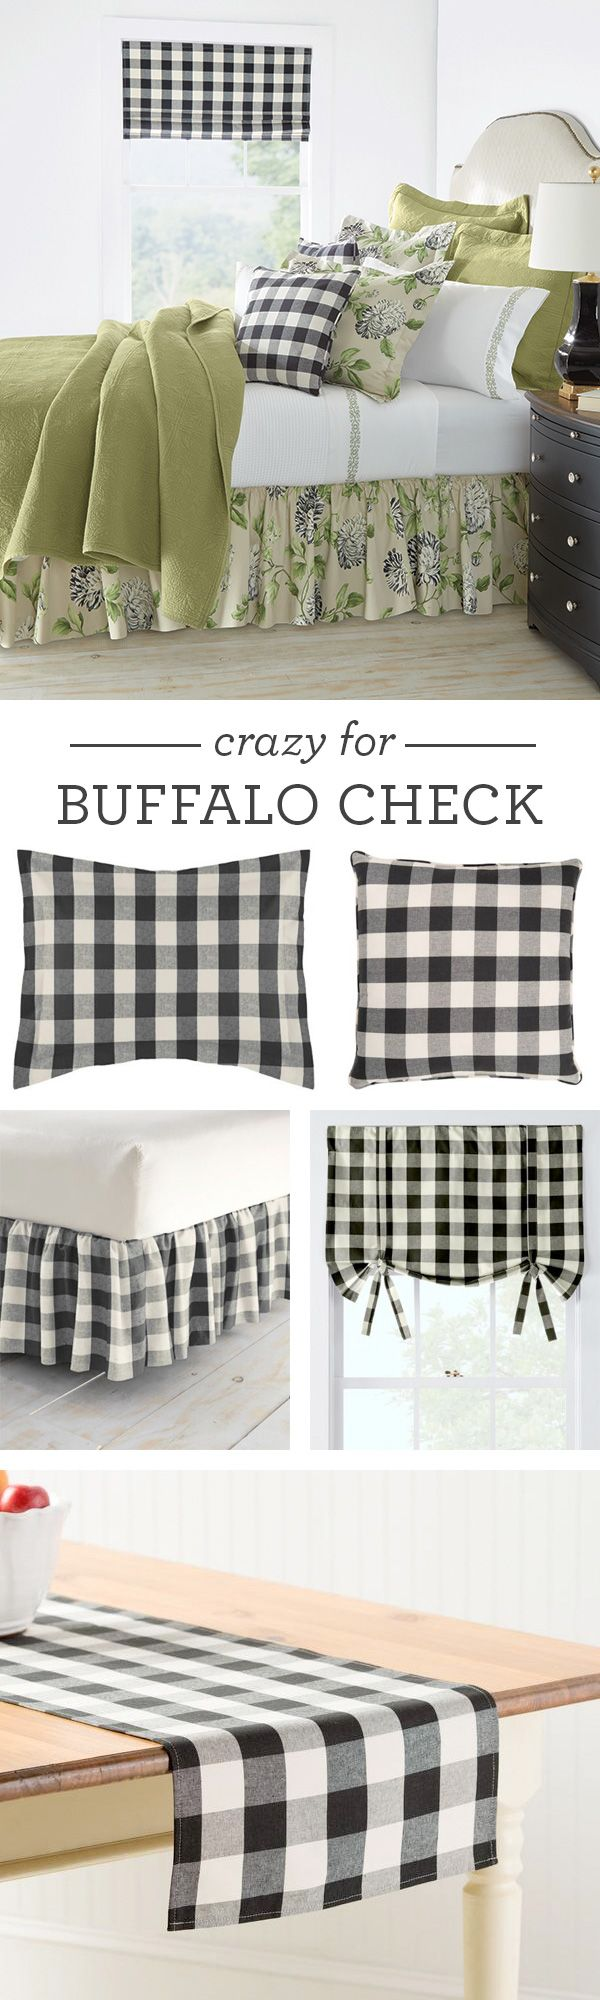 Black and white checked curtains - Great Site For Buffalo Check Curtains Drapes Pillows Dust Ruffles